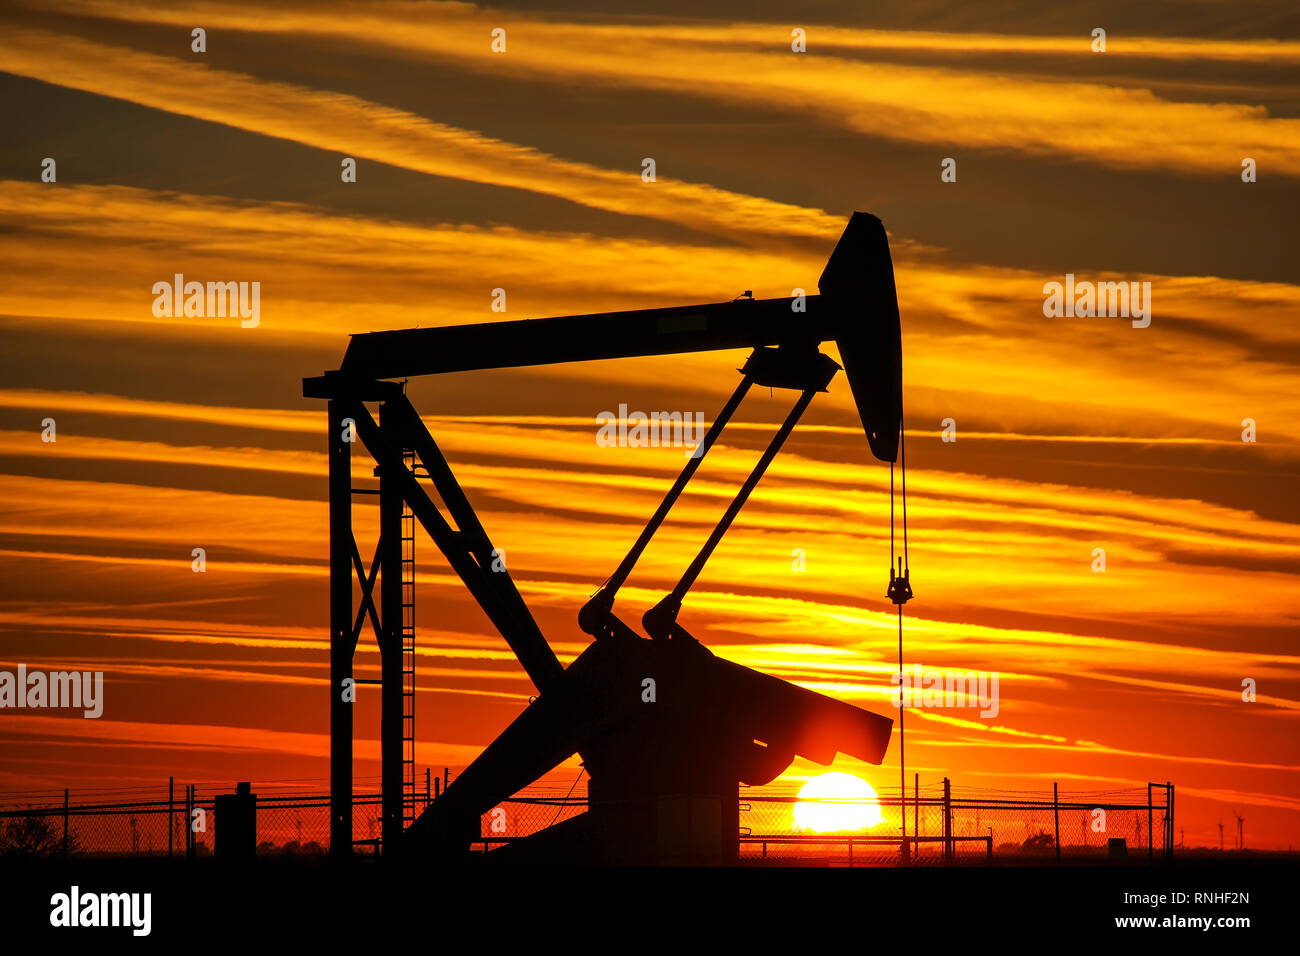 Silhouetted pump jack in the oil field at sunset - Stock Image